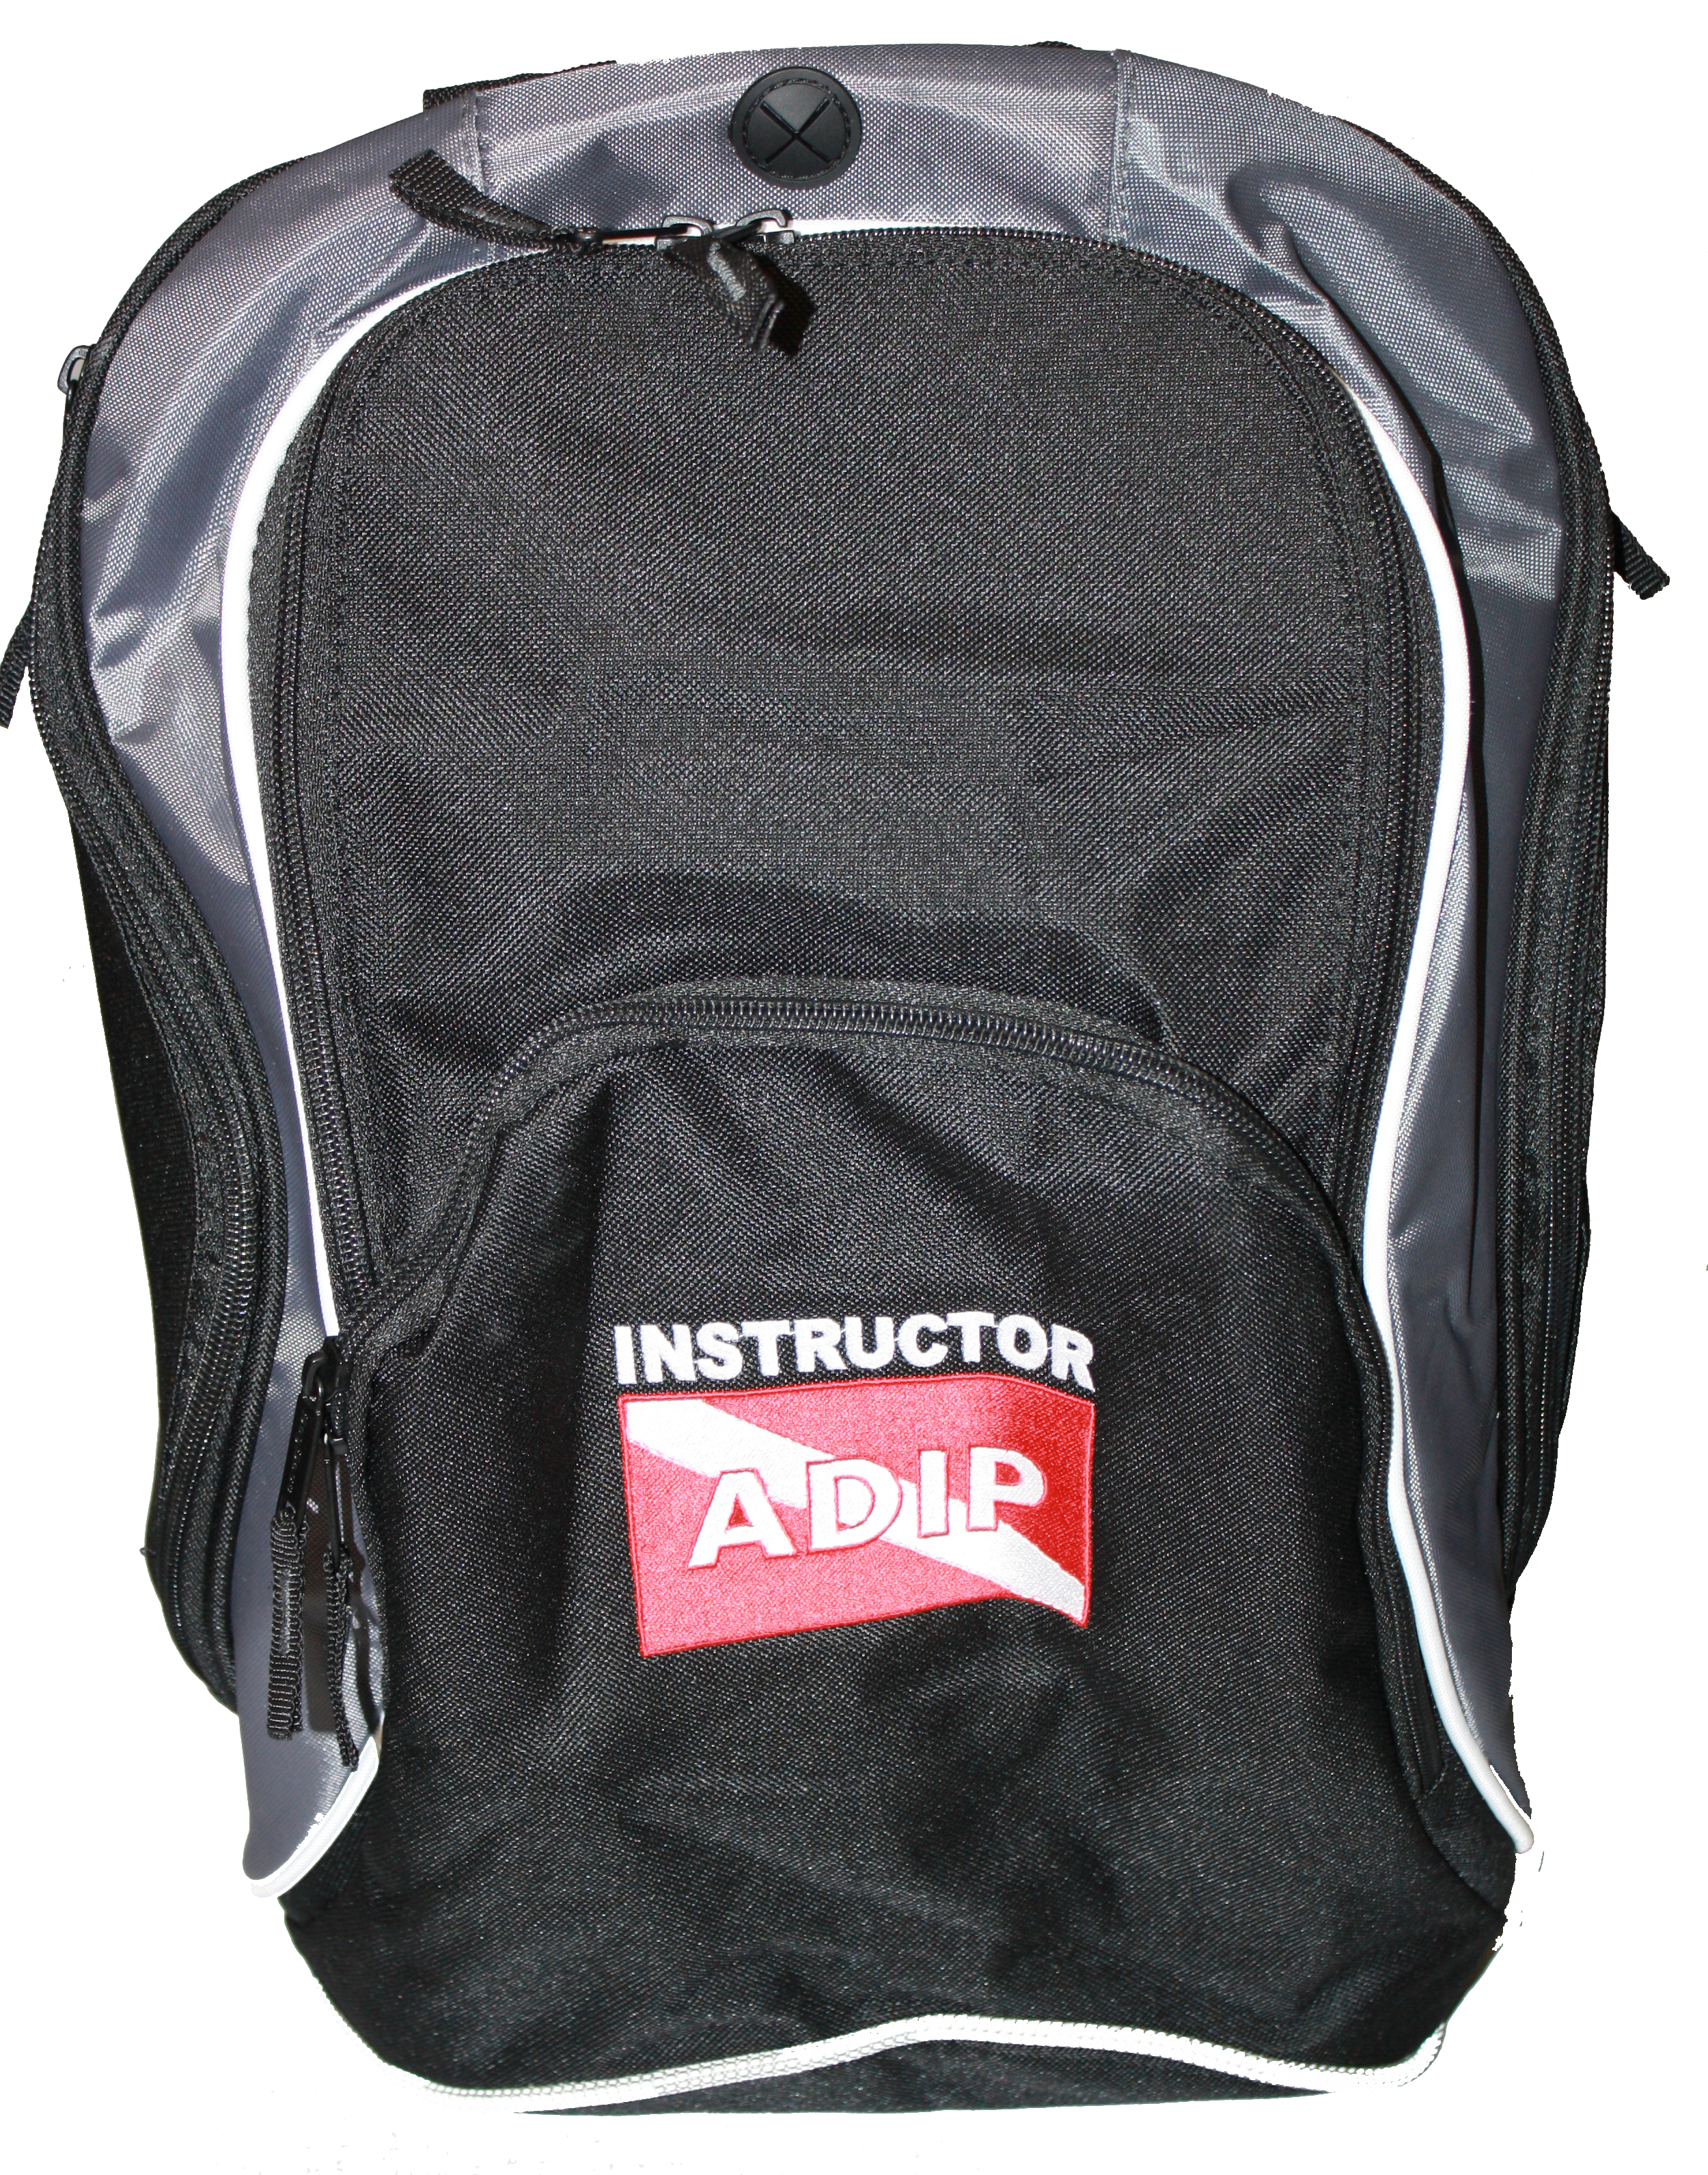 Sac à dos (Instructor)